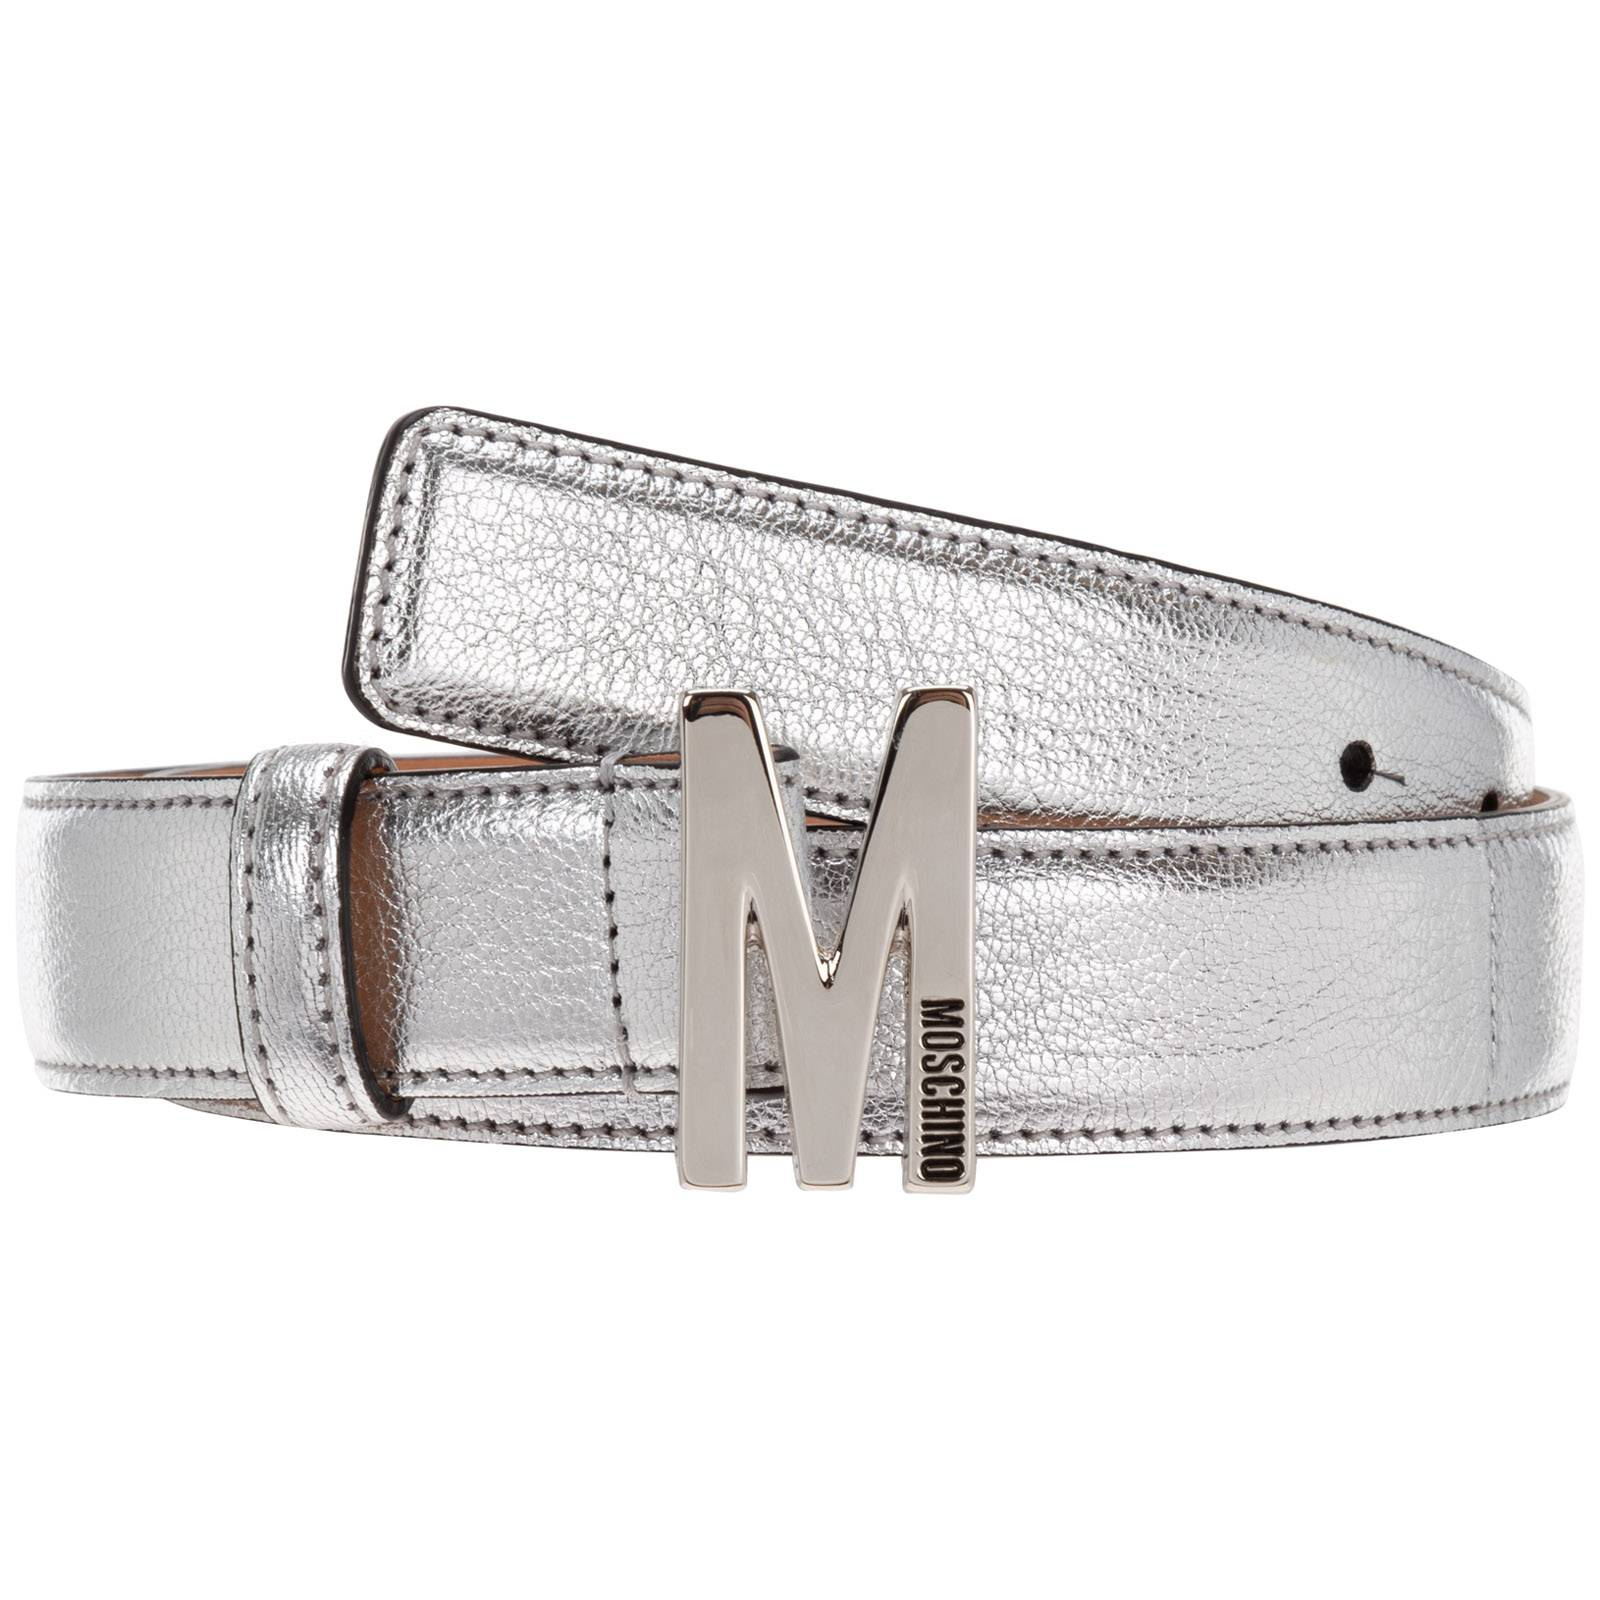 Moschino Women's genuine leather belt  - Silver - Size: 44